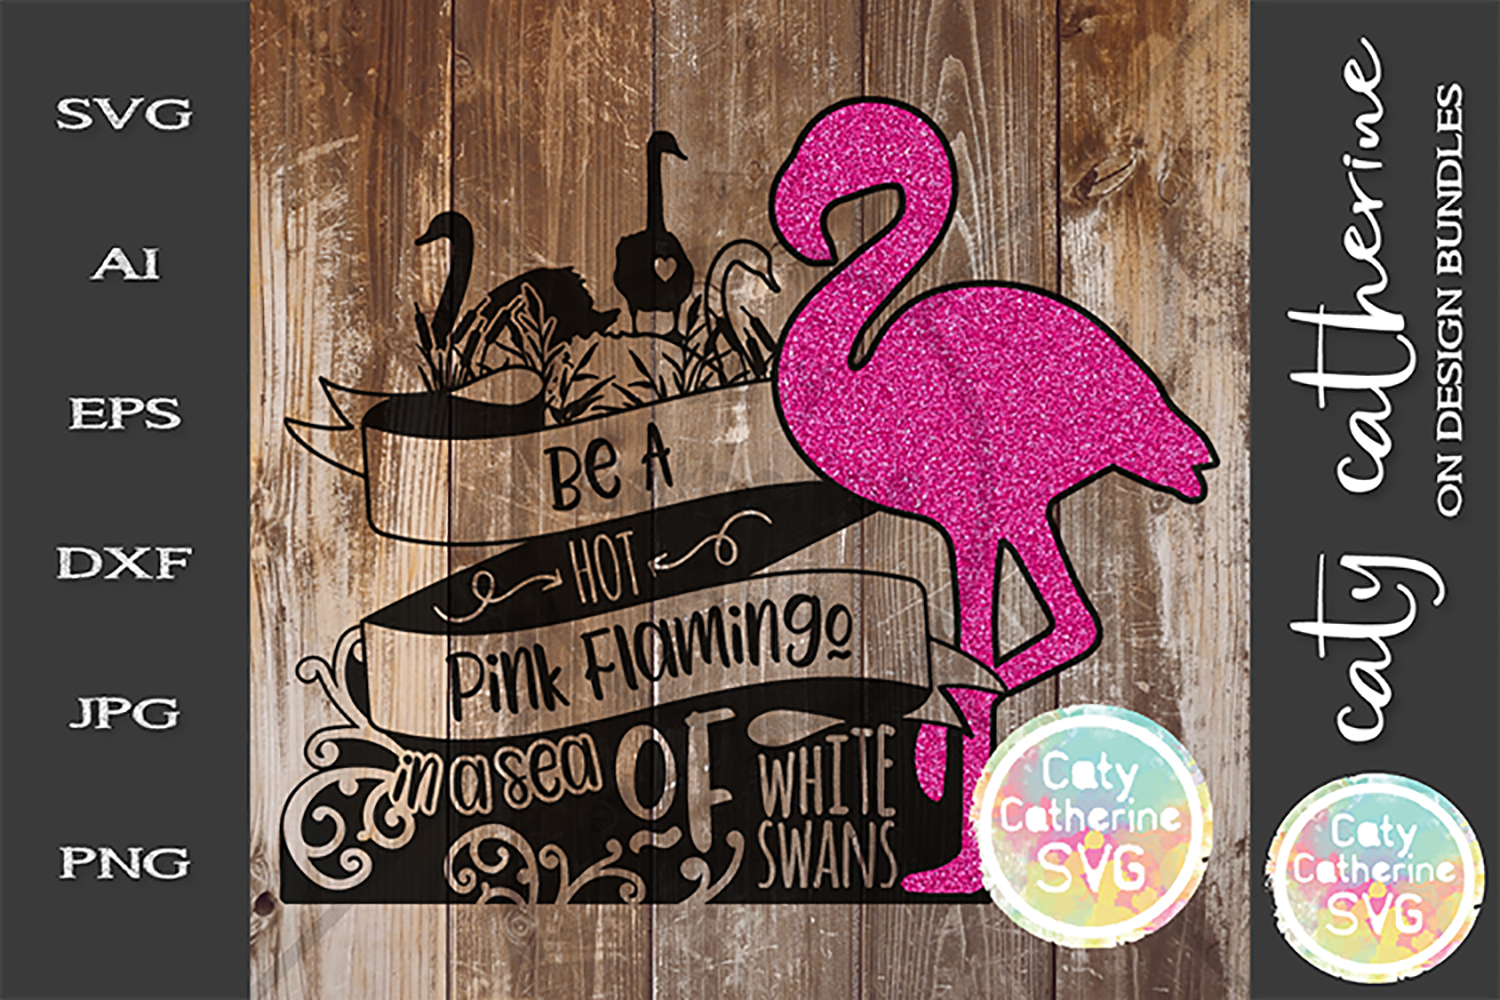 Be A Hot Pink Flamingo In A Sea Of White Swans SVG example image 1